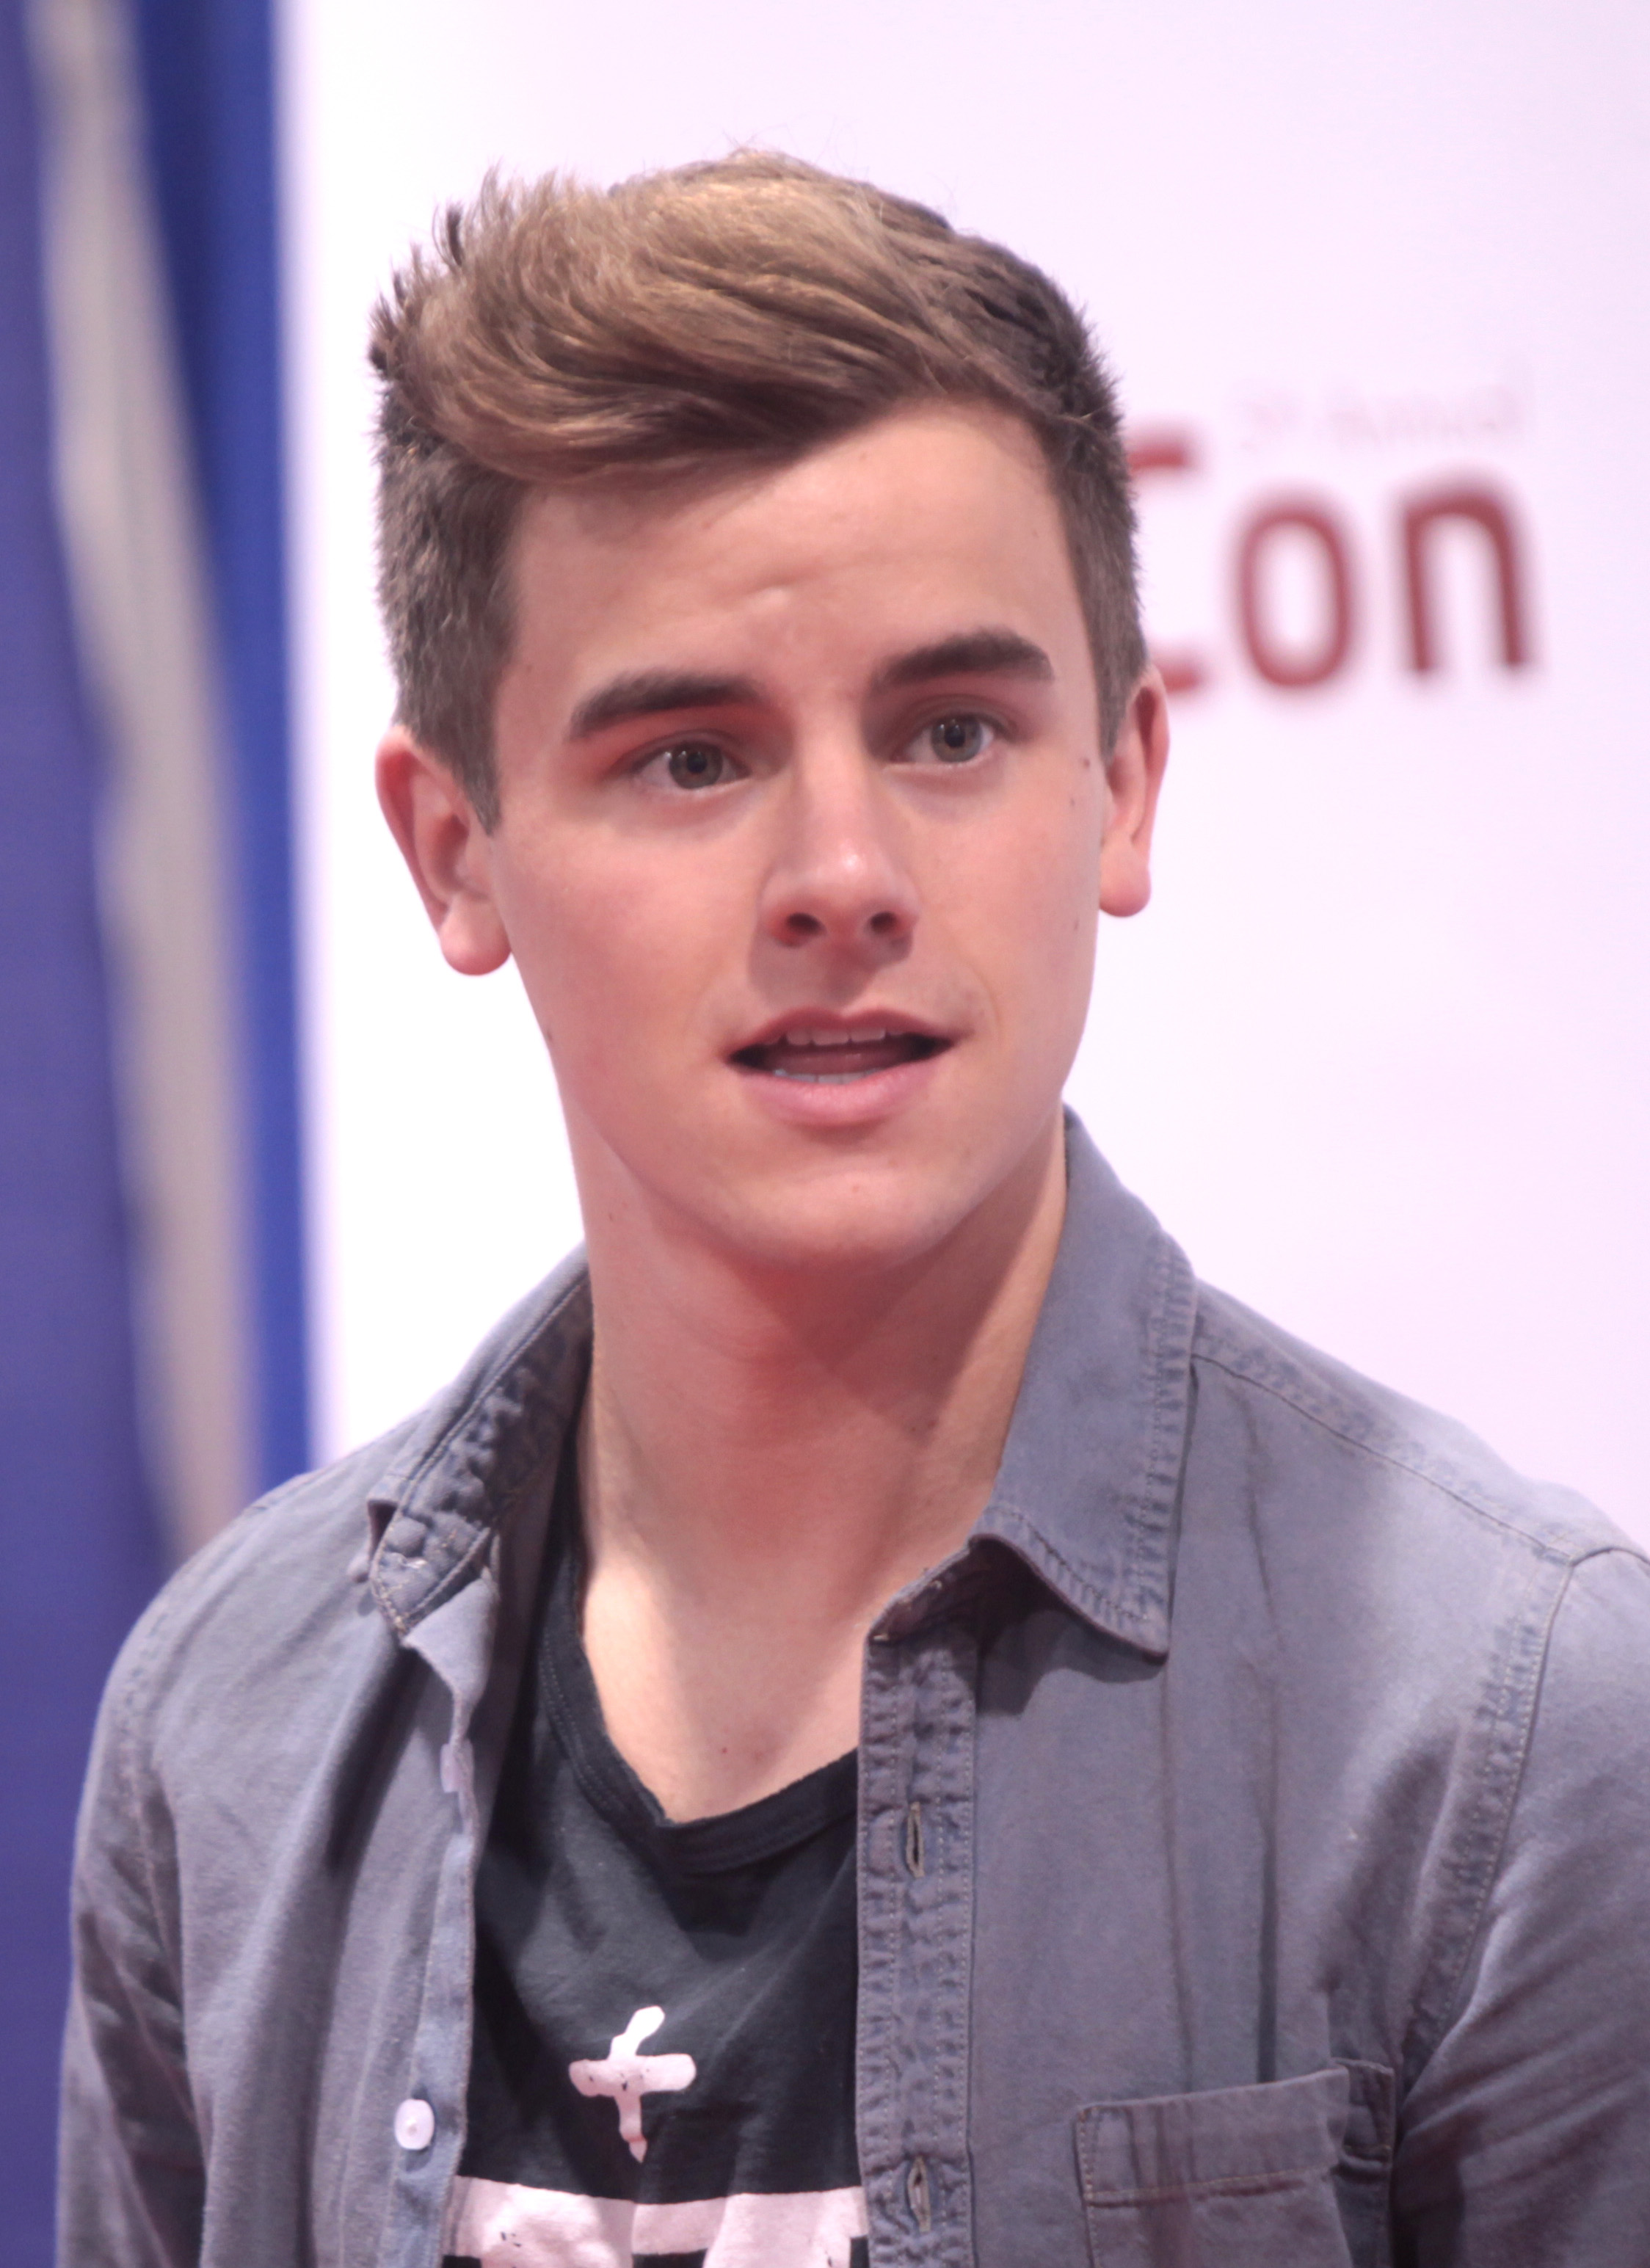 https://upload.wikimedia.org/wikipedia/commons/a/a4/Connor_Franta_at_VidCon_2014_(cropped).jpg